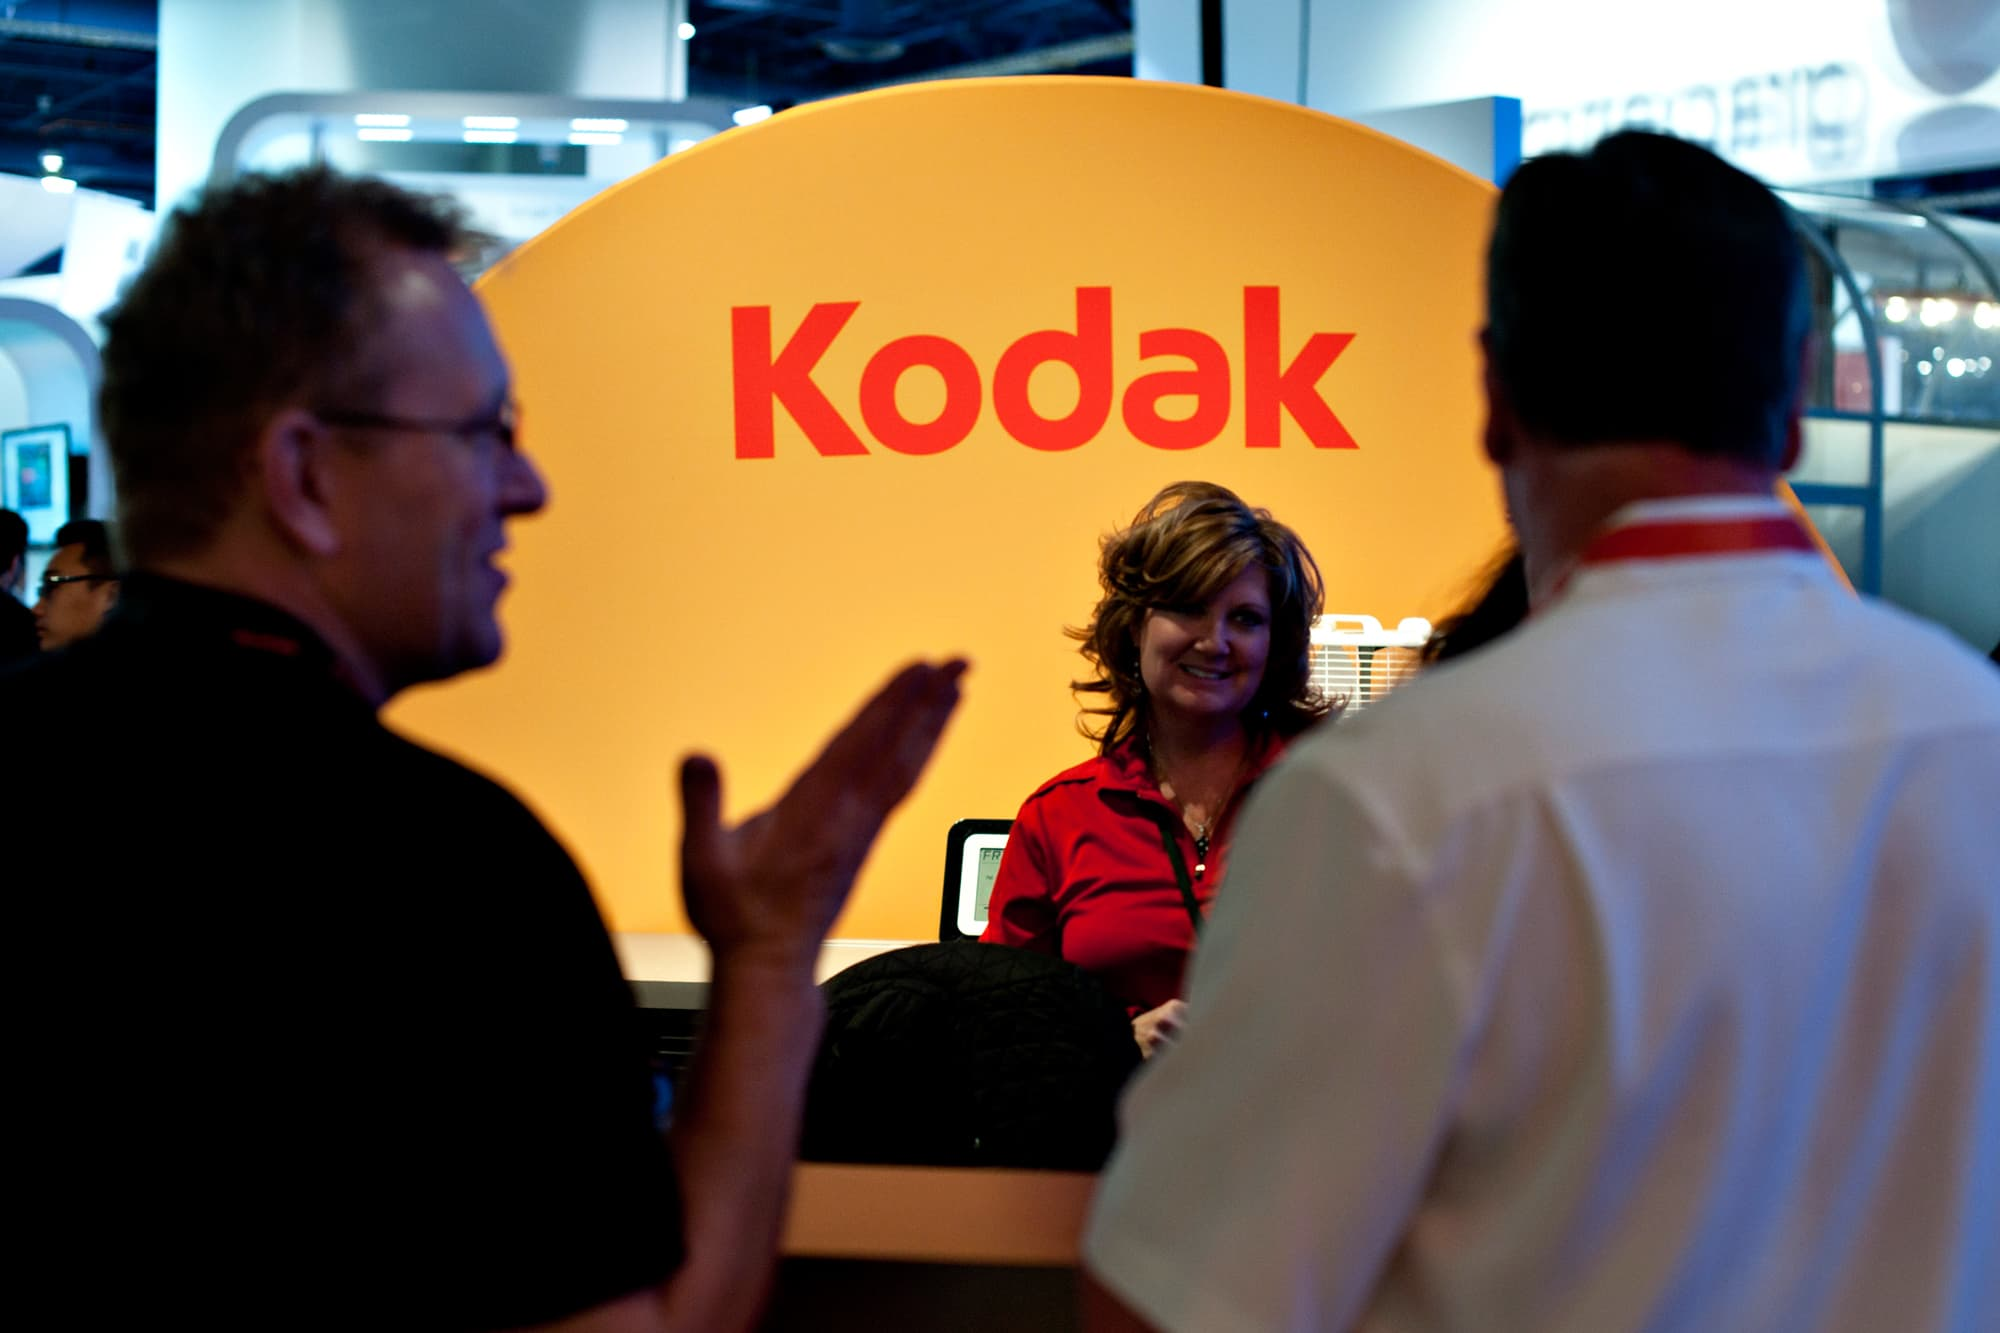 Kodak shares soar, halted repeatedly on Trump deal to make drug ingredients